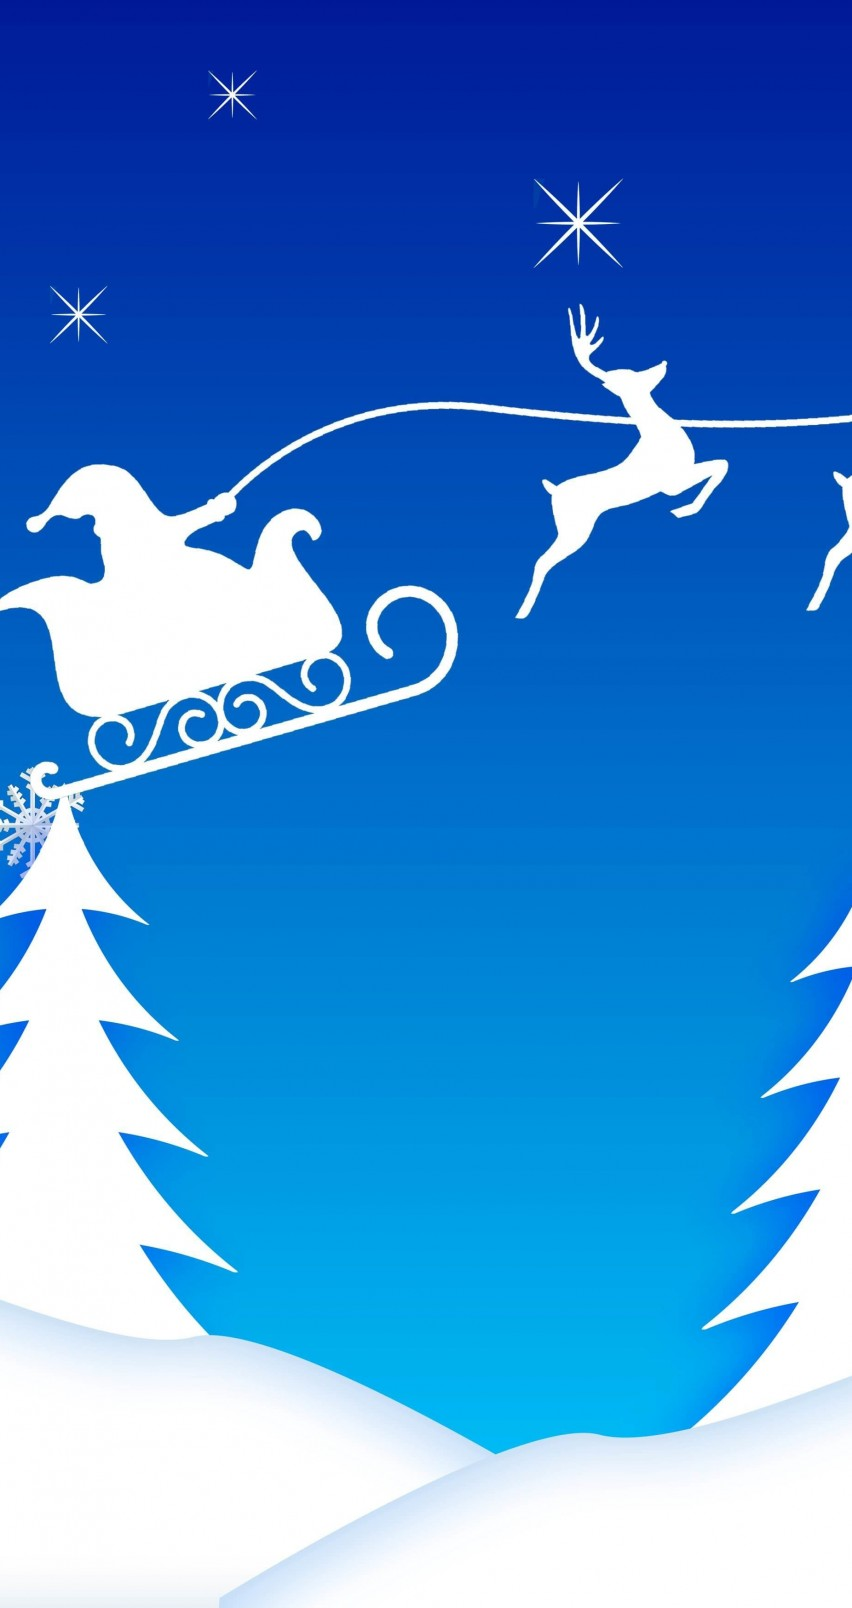 Iphone wallpapers hd - Download Santa S Sleigh Illustration Hd Wallpaper For